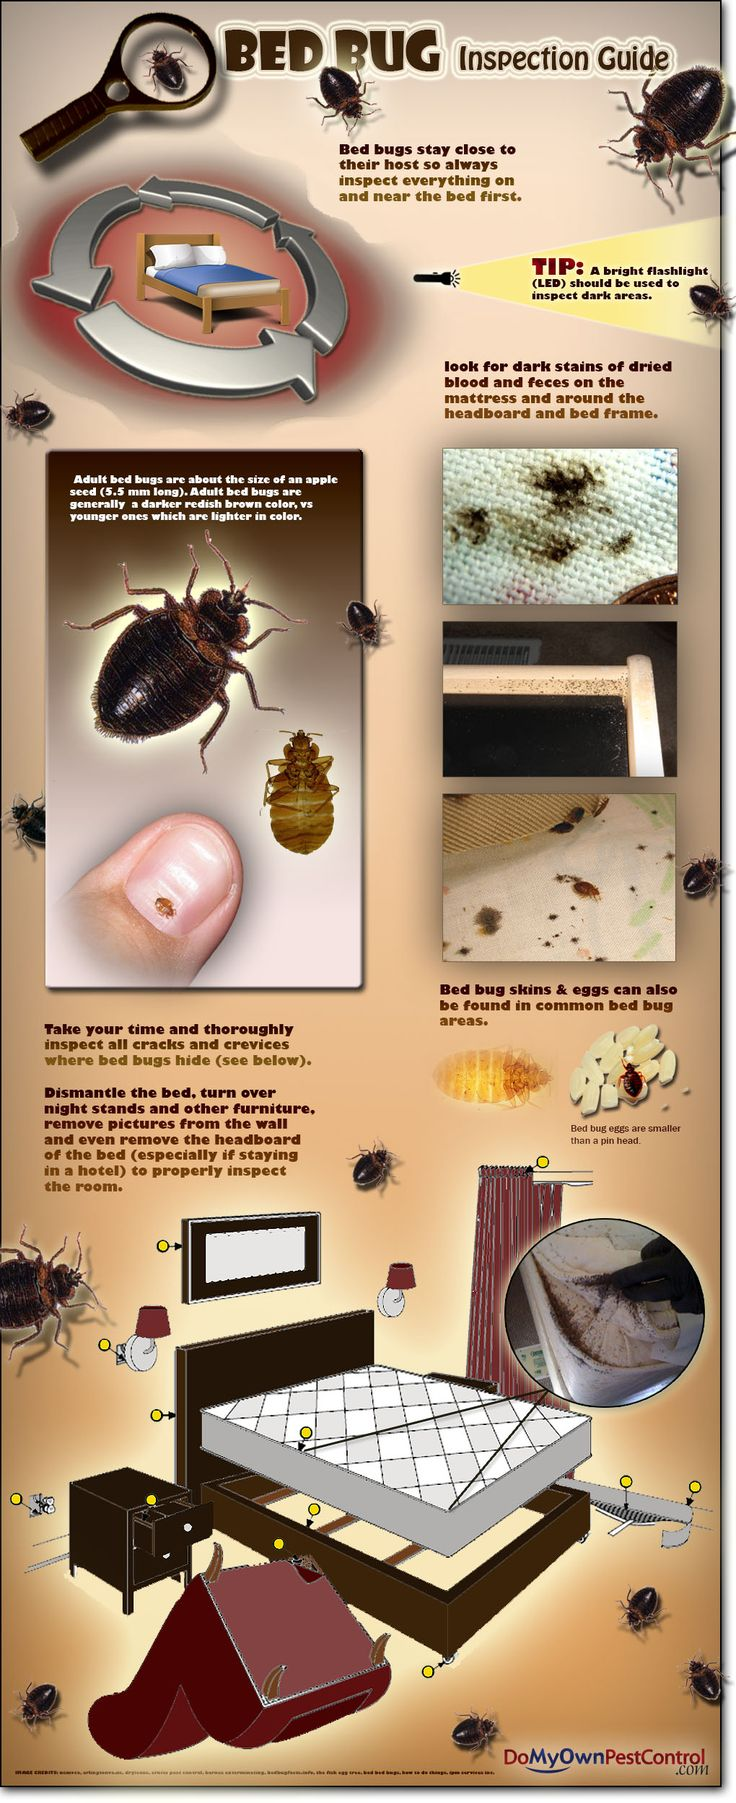 26 best bed bugs images on pinterest pest control 3 4 beds and